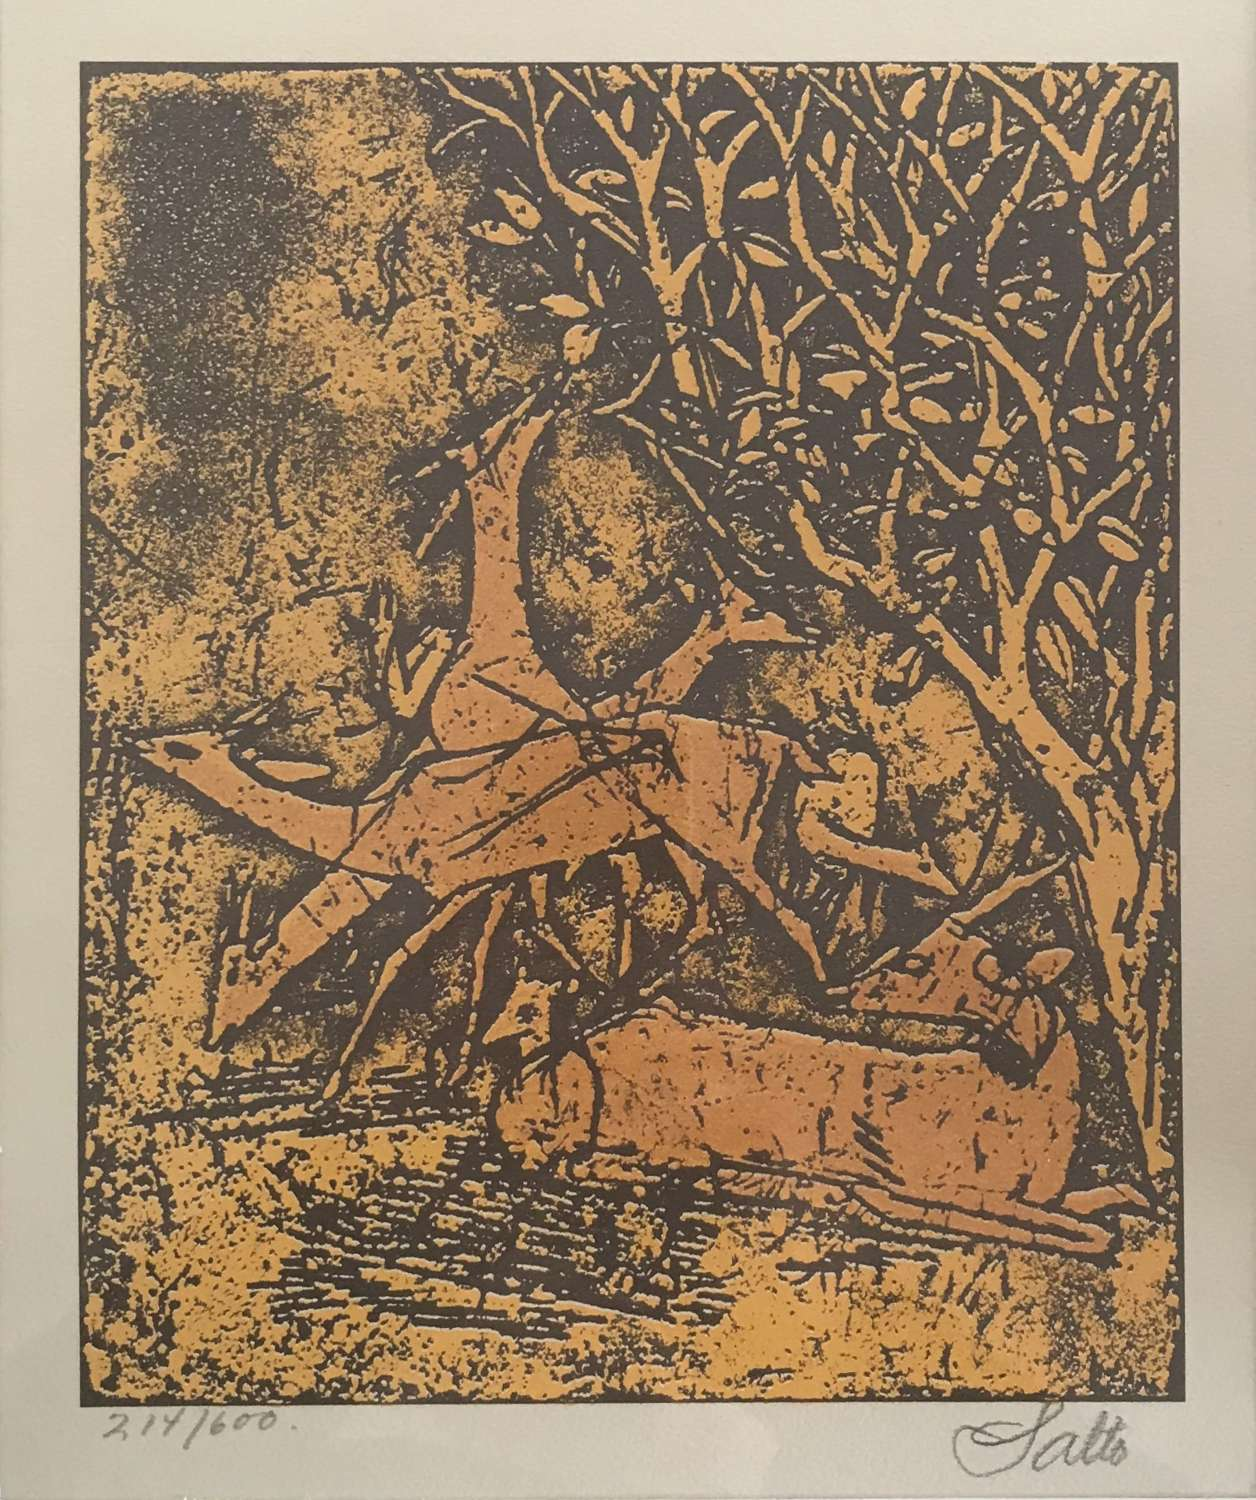 Axel Salto lithograph of deer in forest